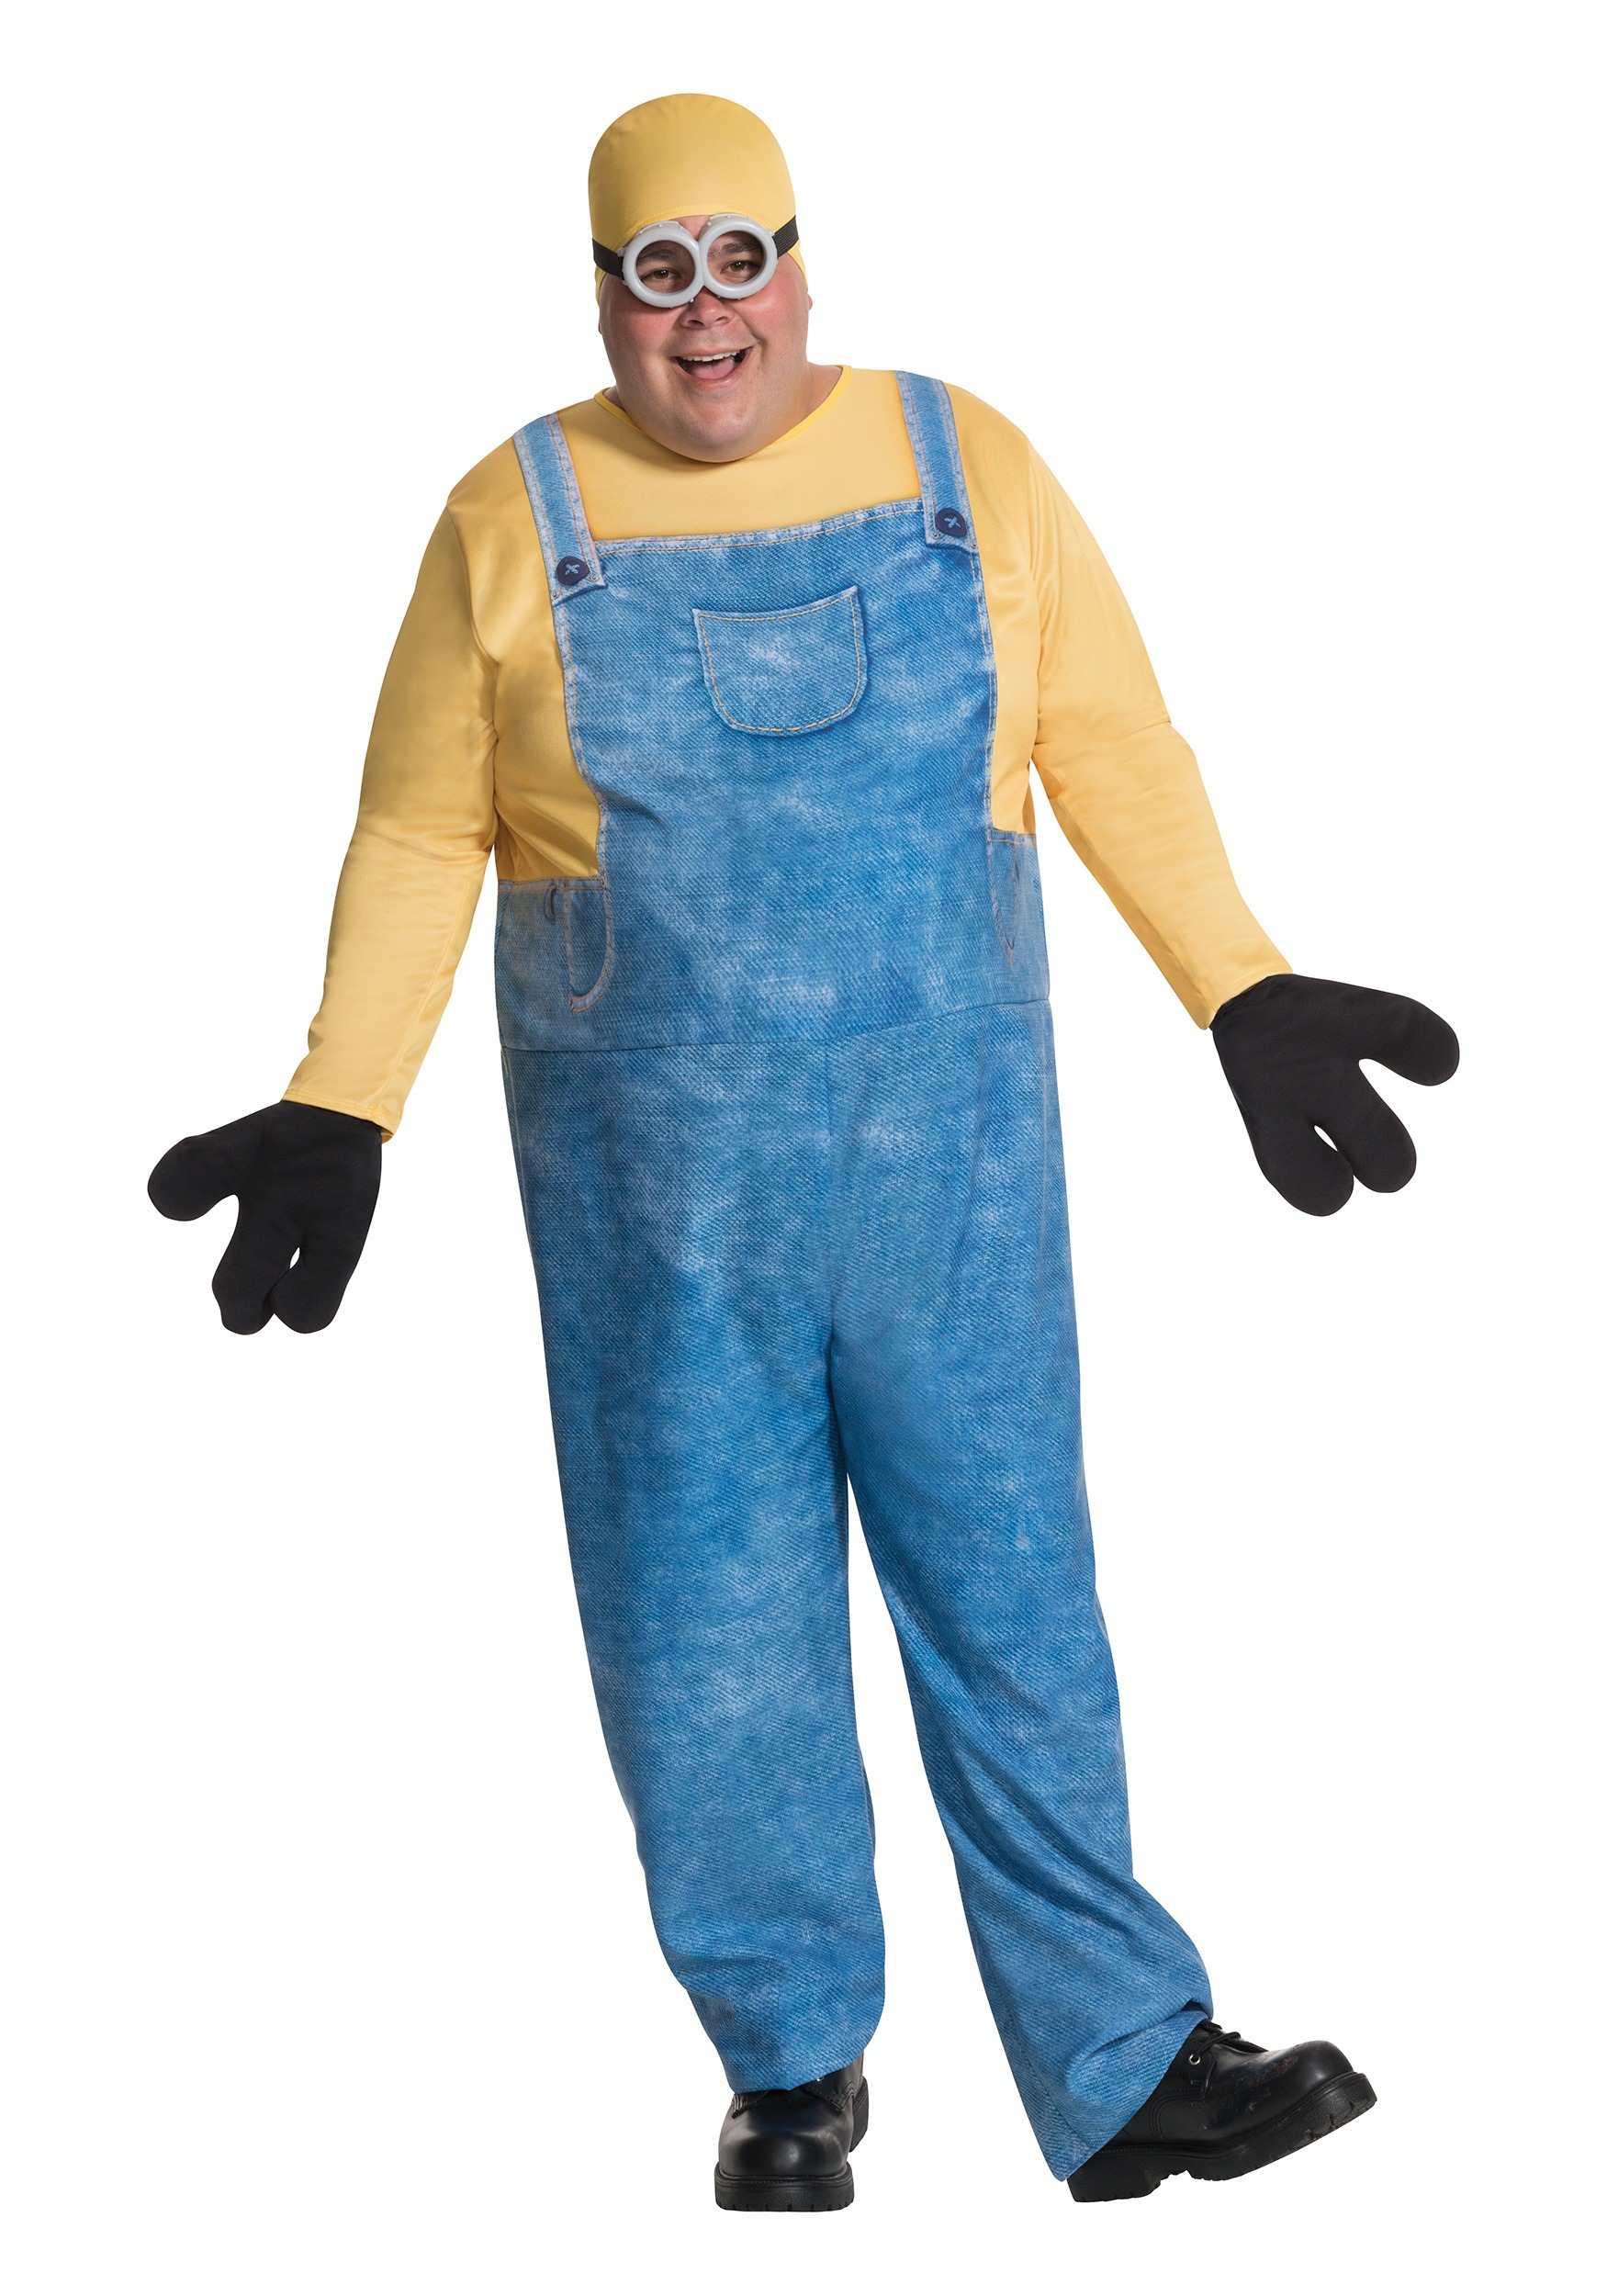 plus size minion bob costume - Best Halloween Costumes For Tall Guys